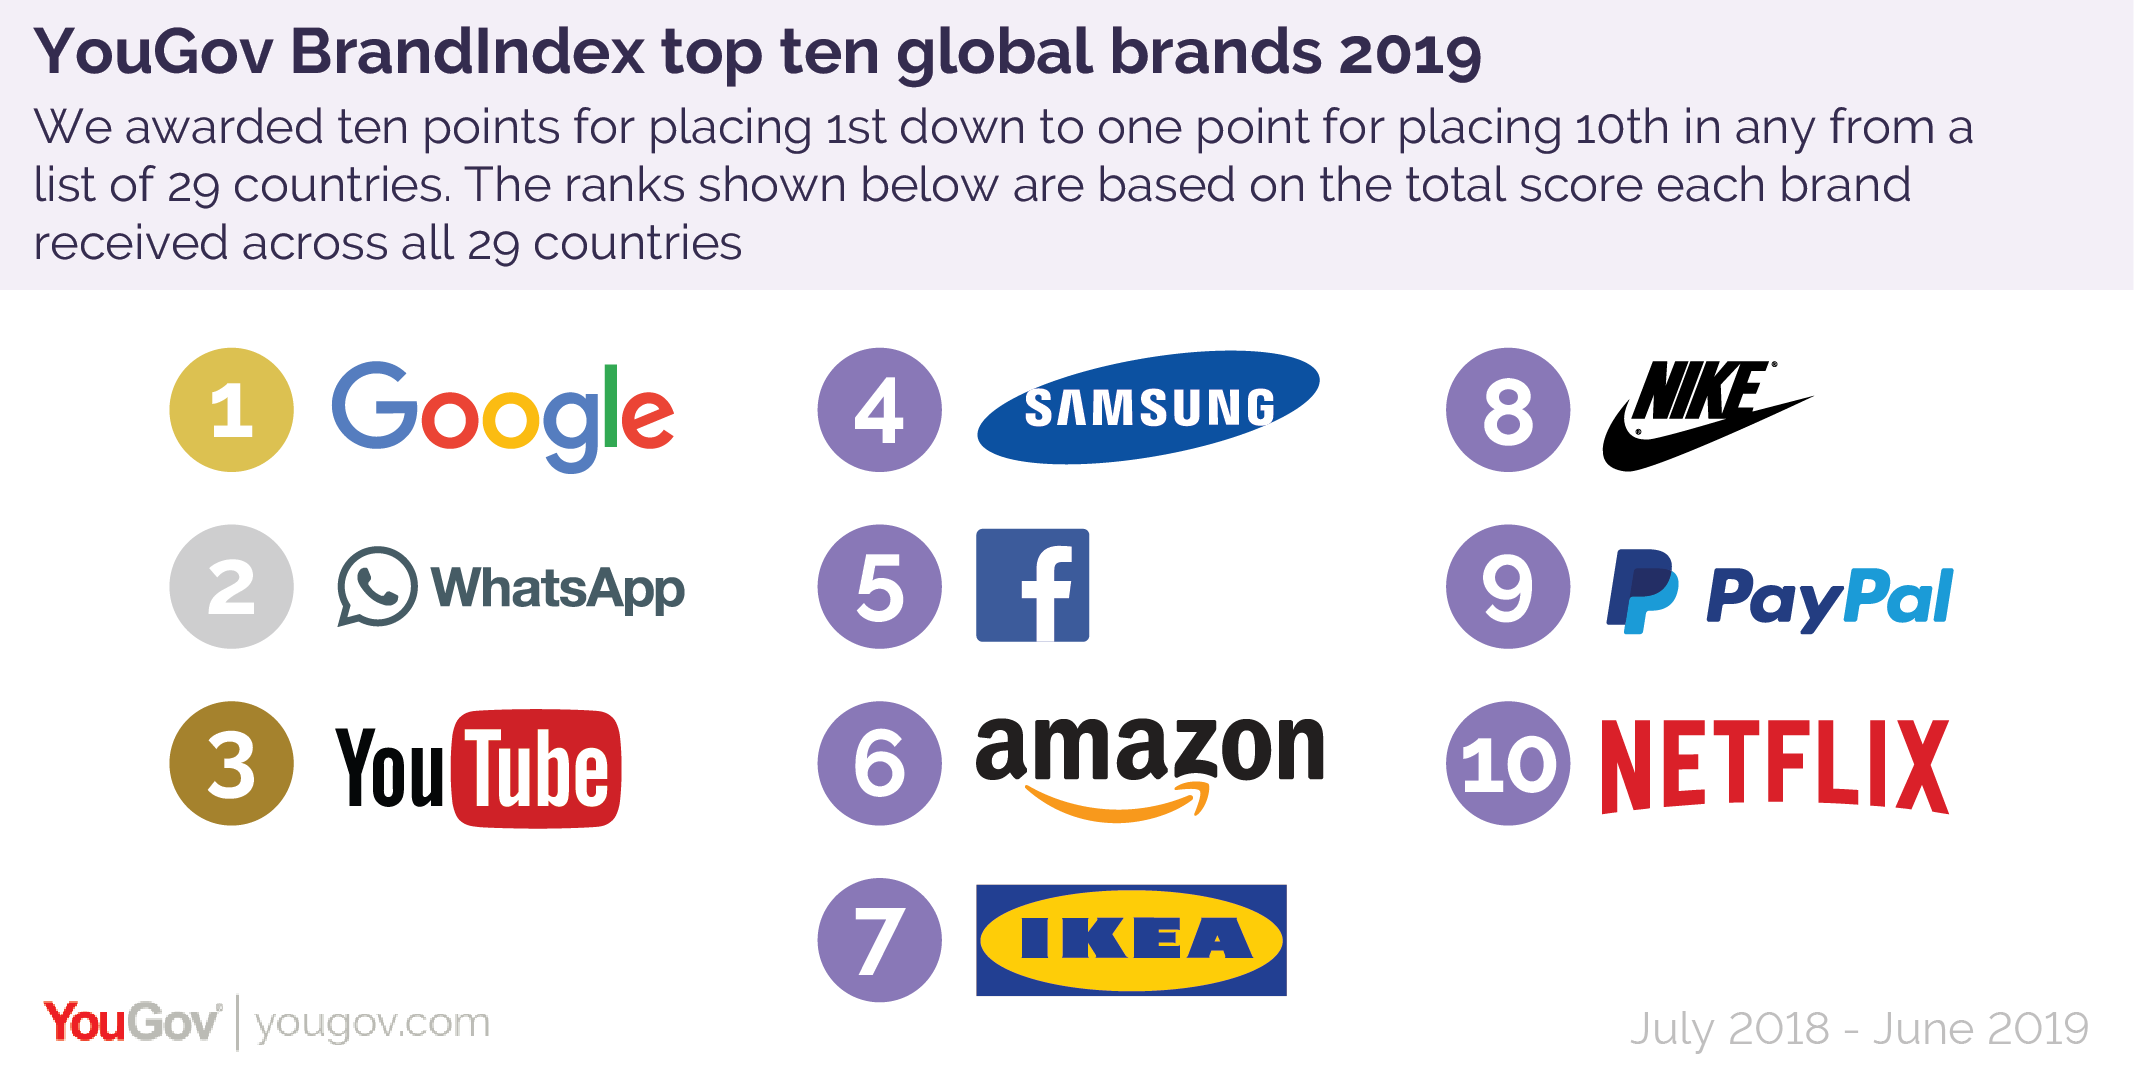 Nike and IKEA the only non-tech brands in top 10, says